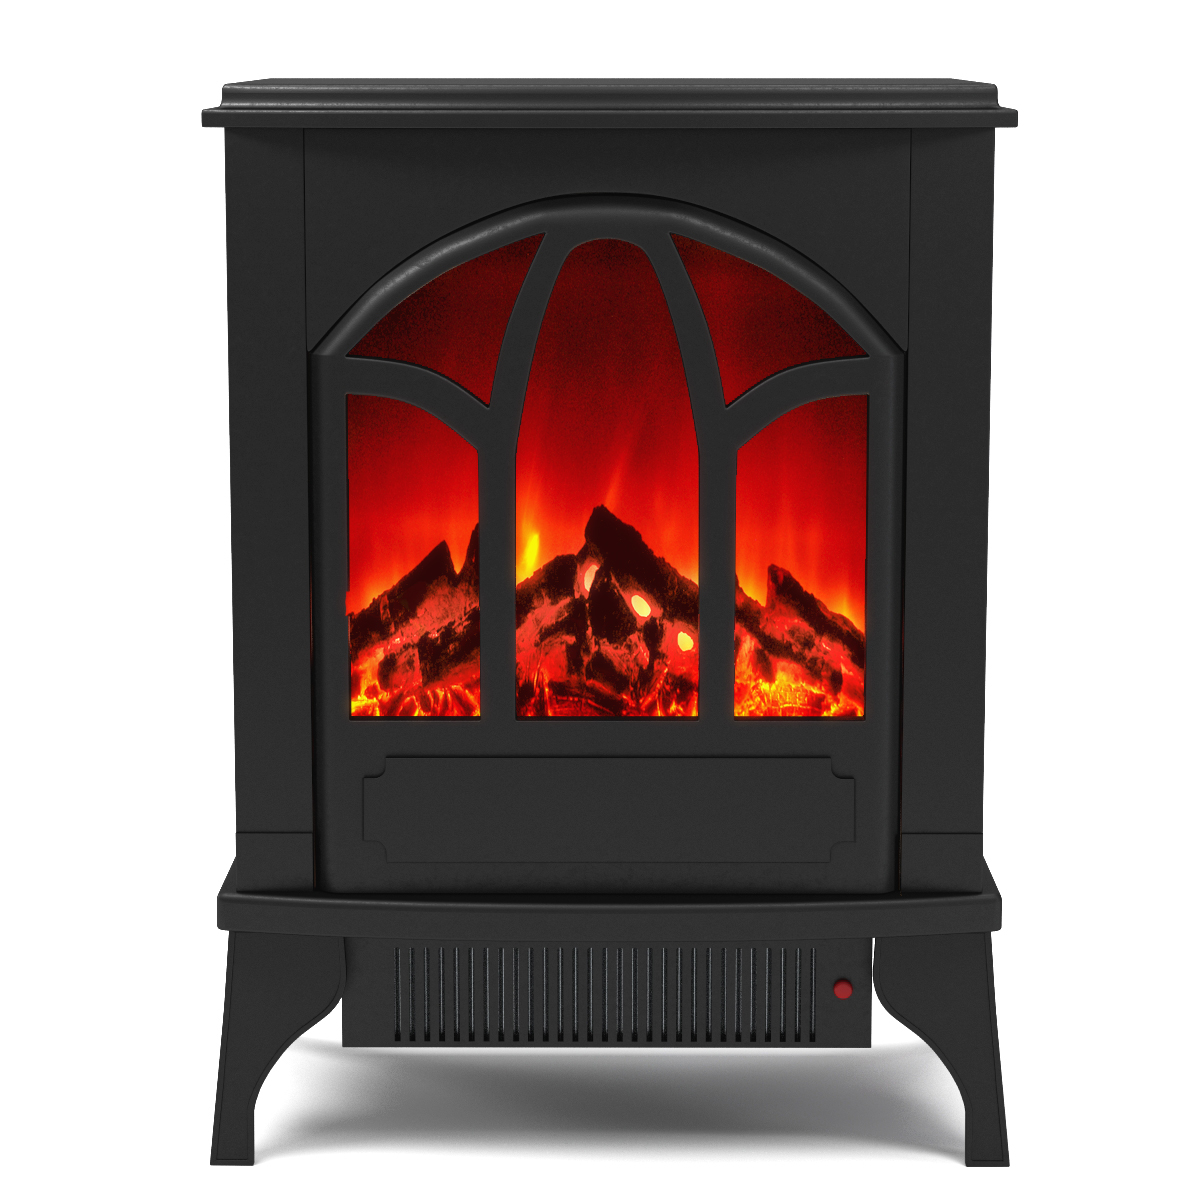 My Gas Fireplace Does Not Heat The Room: Juno Electric Fireplace Free Standing Portable Space